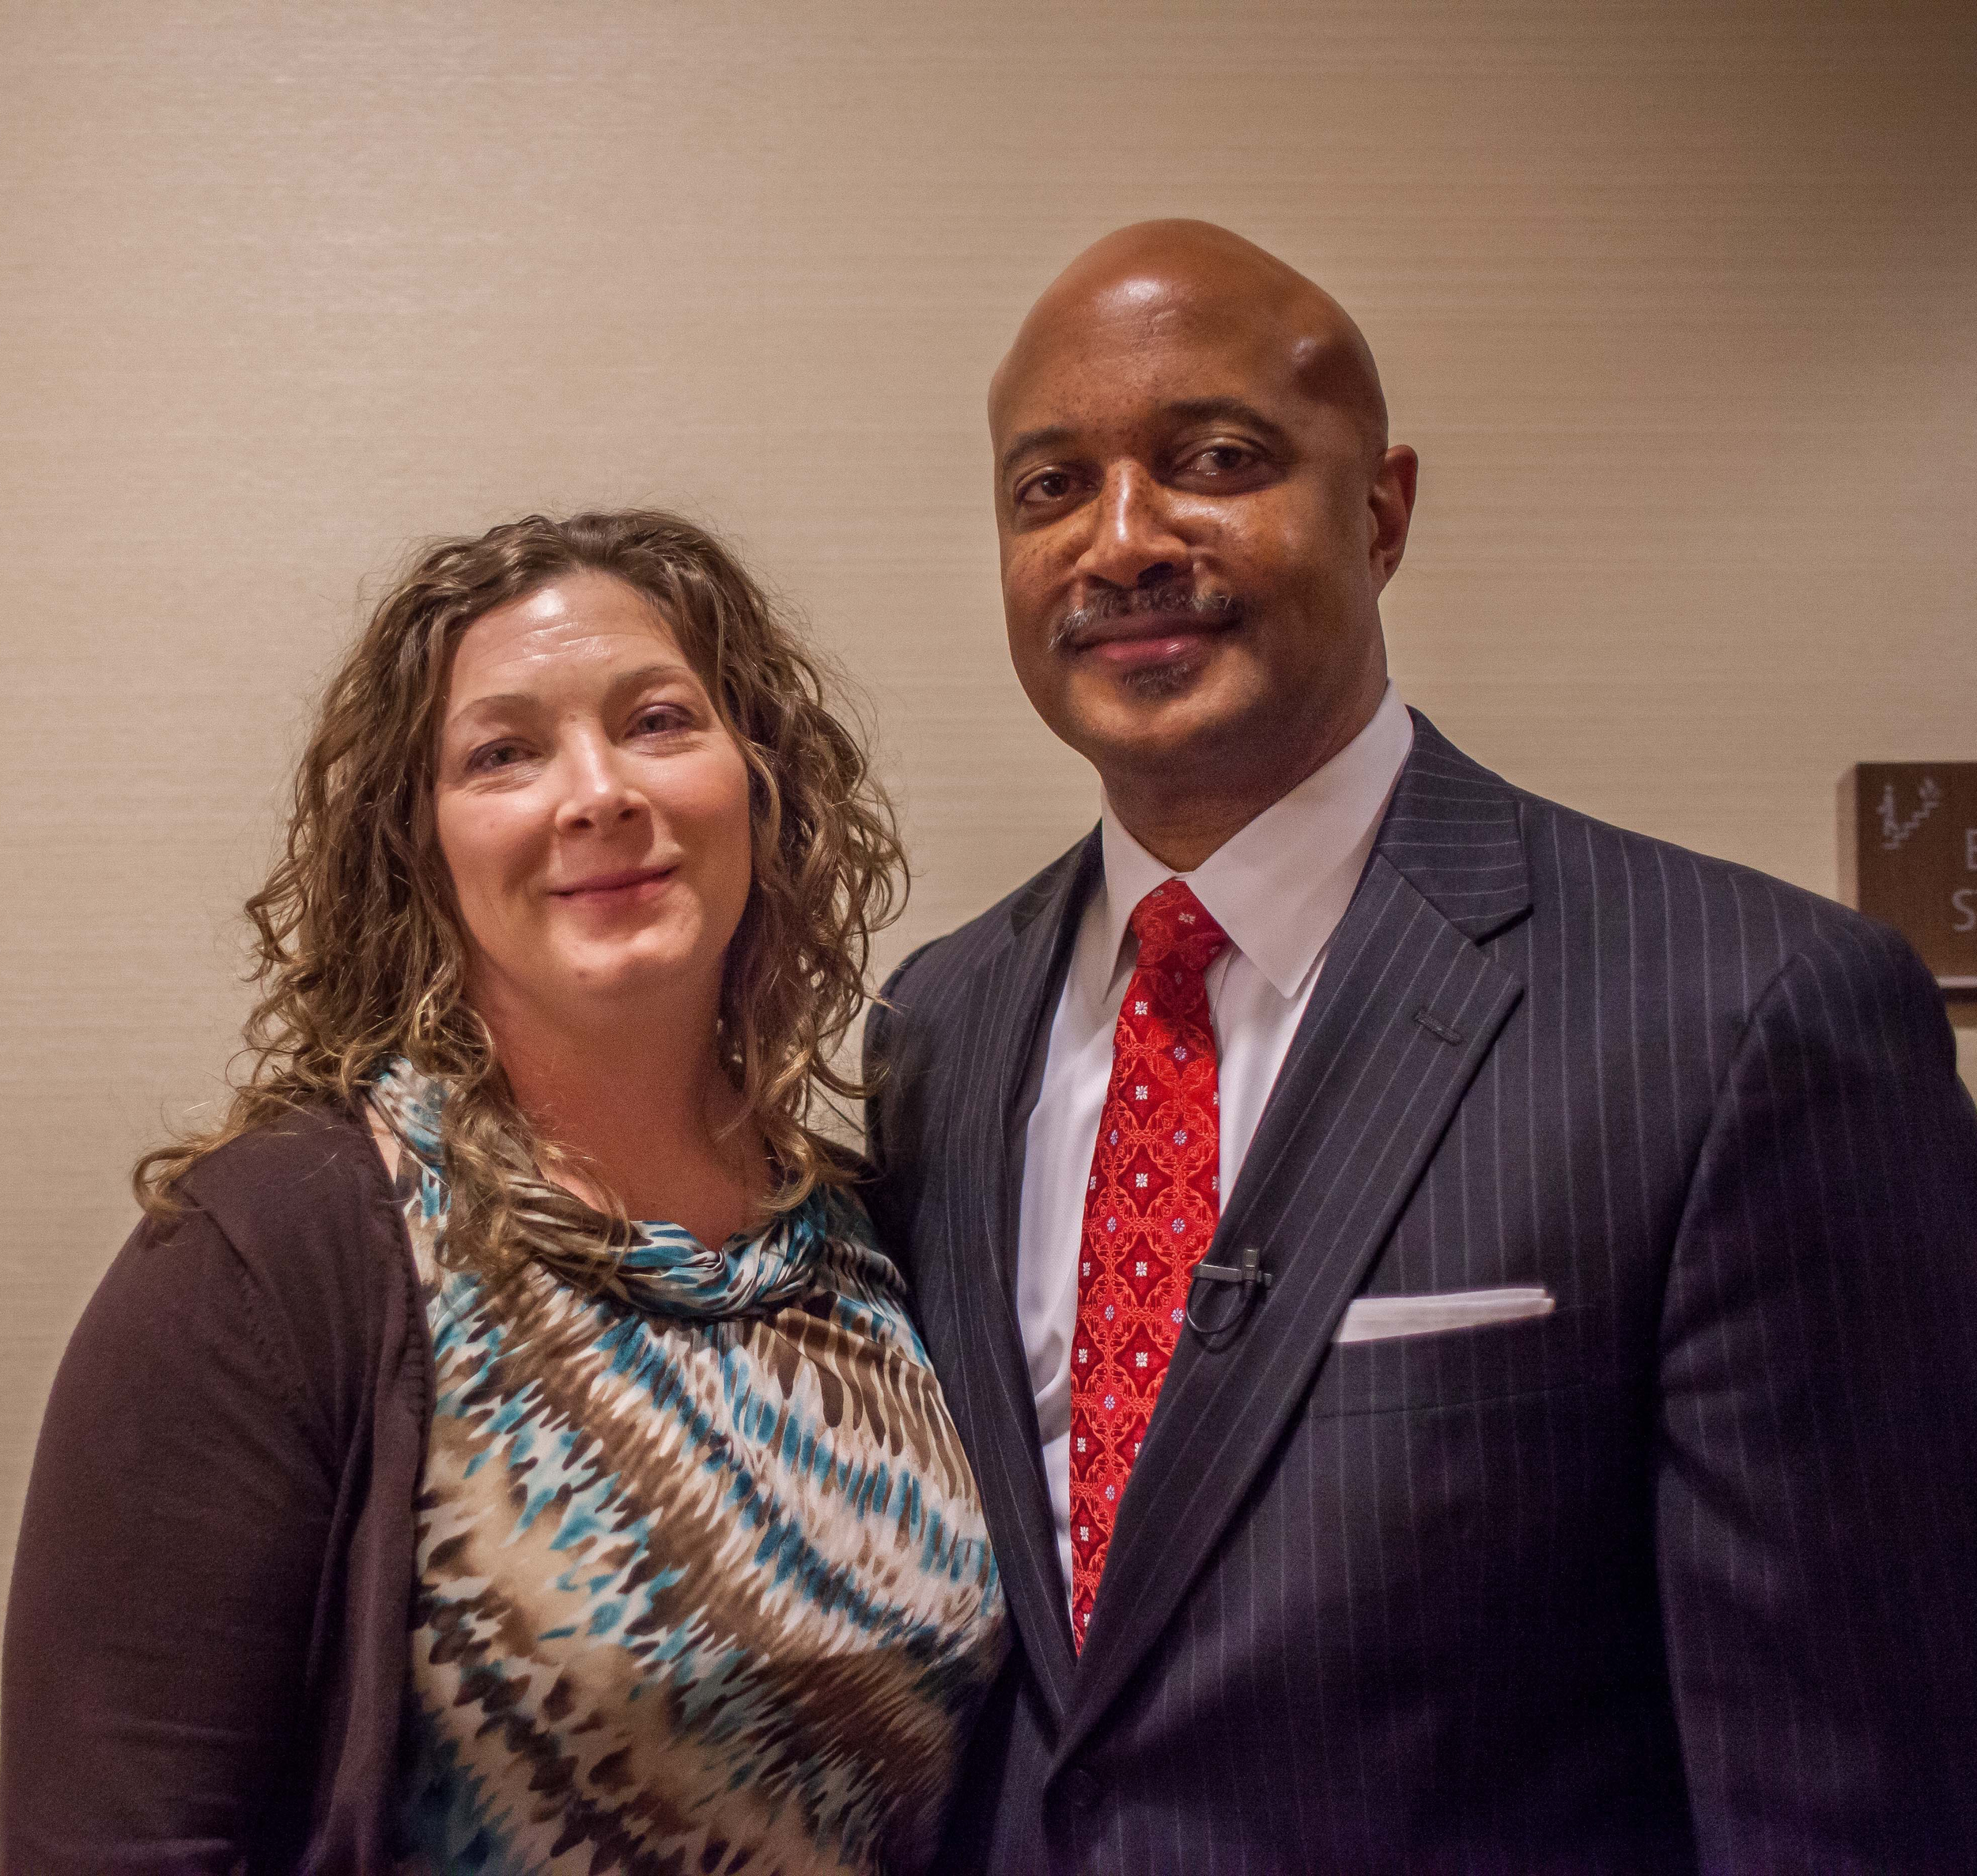 Vicki Becker endorses Curtis Hill for Attorney General.